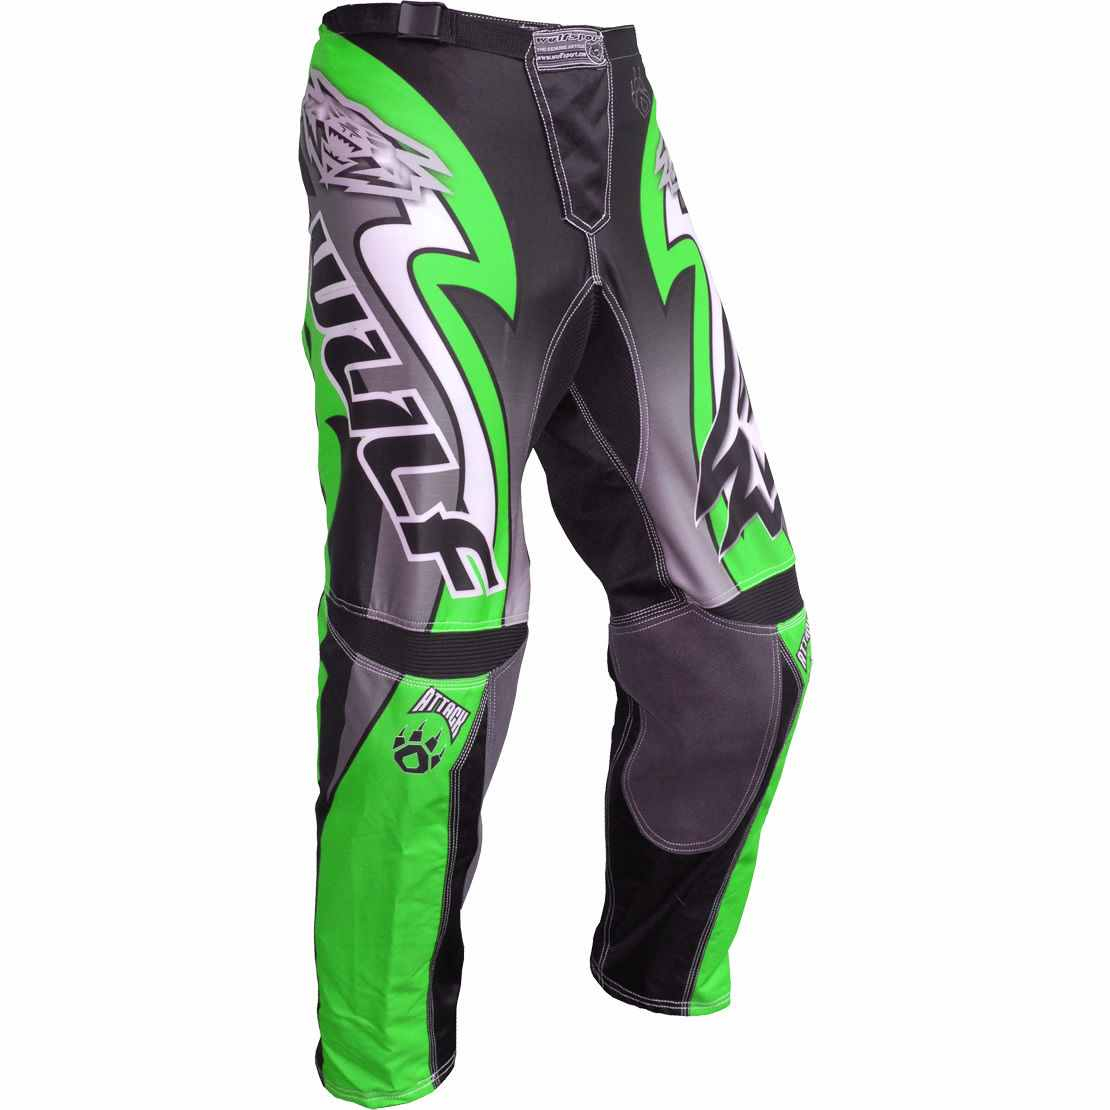 Wulfsport ATTACK Cub Race Pants - Green